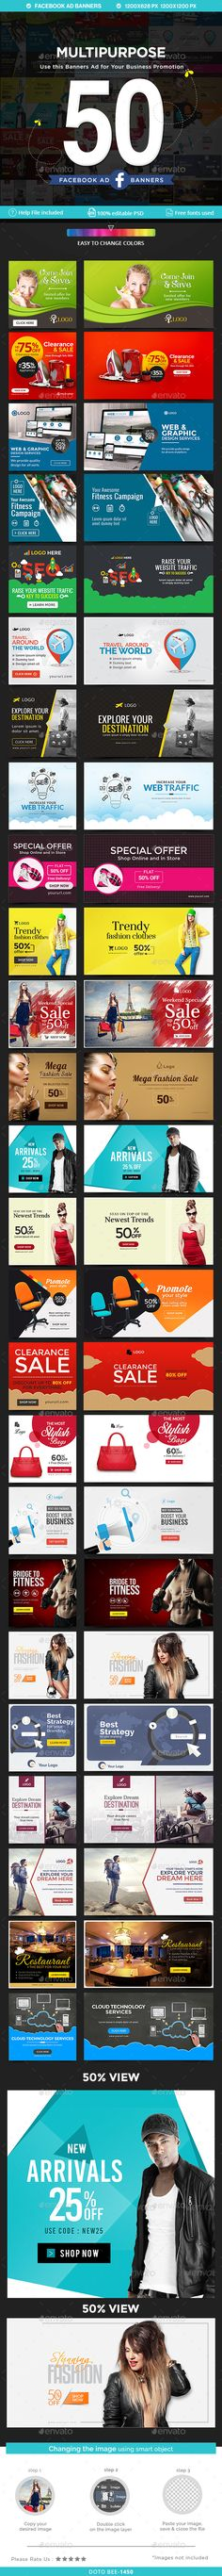 Facebook Newsfeed Ad Banner Template 50 Designs - Social Media Web Template PSD. Download here: http://graphicriver.net/item/facebook-newsfeed-ad-banners-50-designs/16709121?ref=yinkira